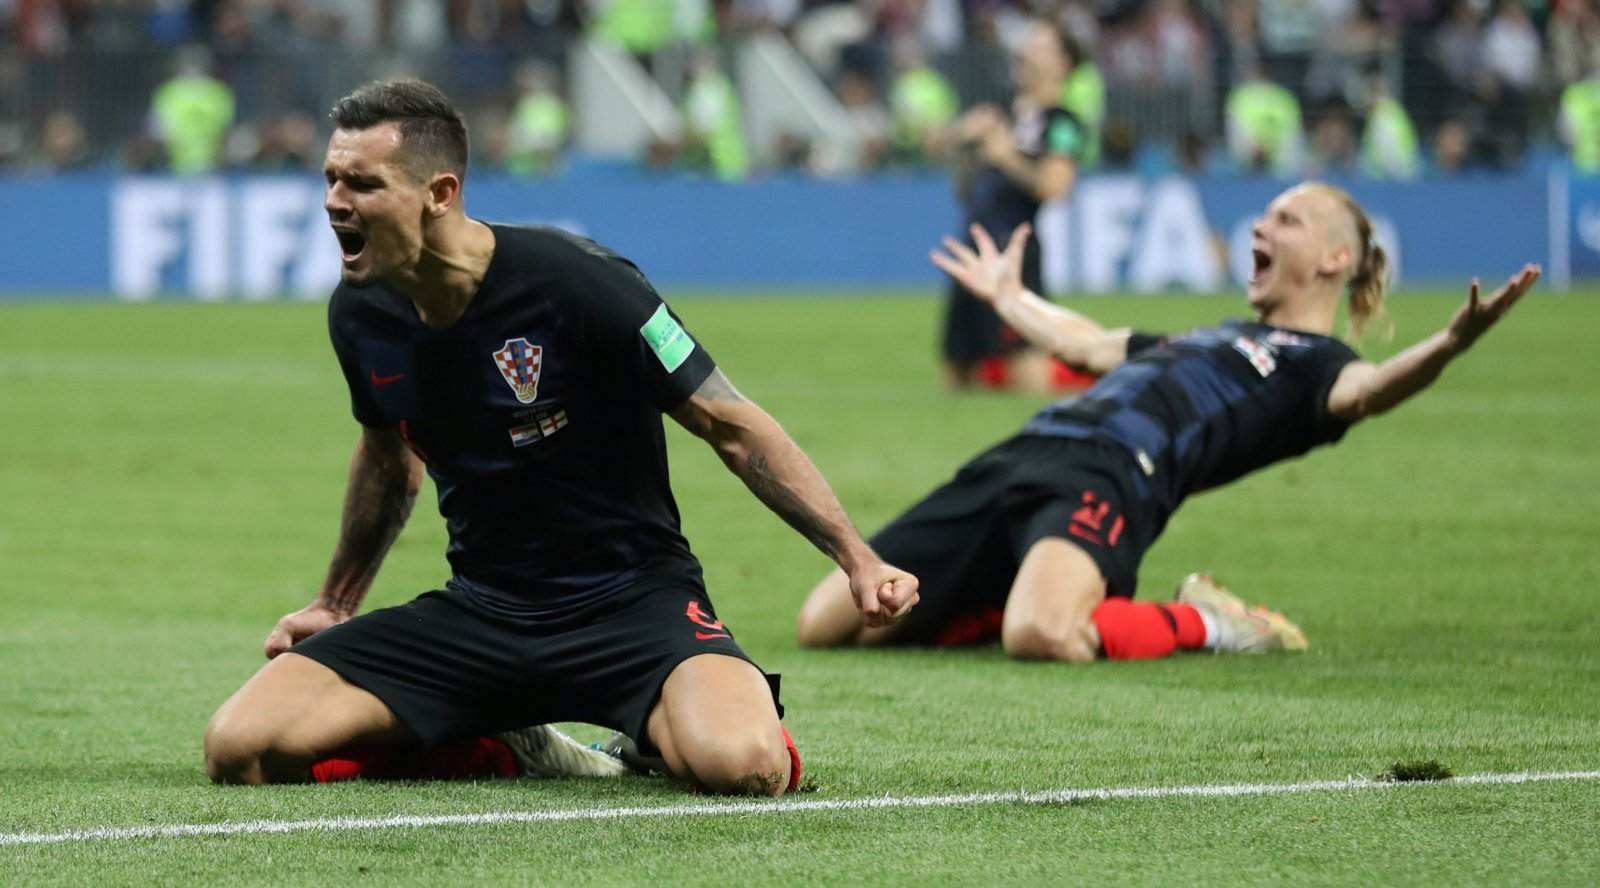 Liverpool: Dejan Lovren reminds us all of the World Cup